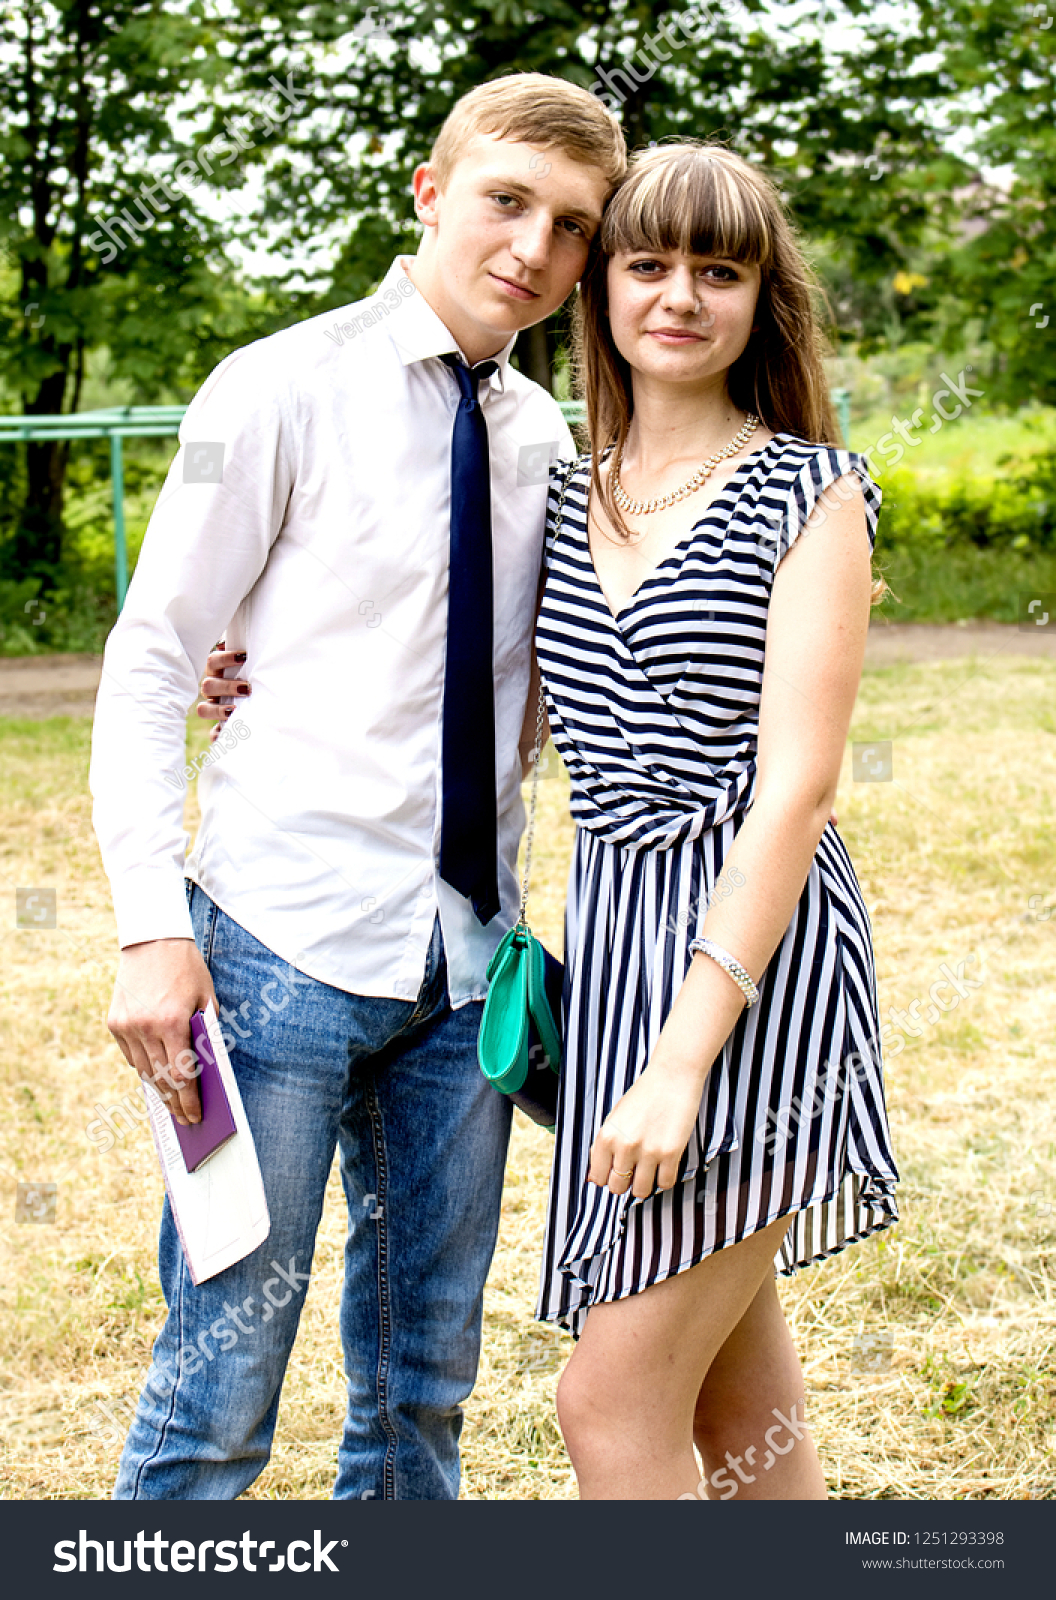 tambov dating one consulting